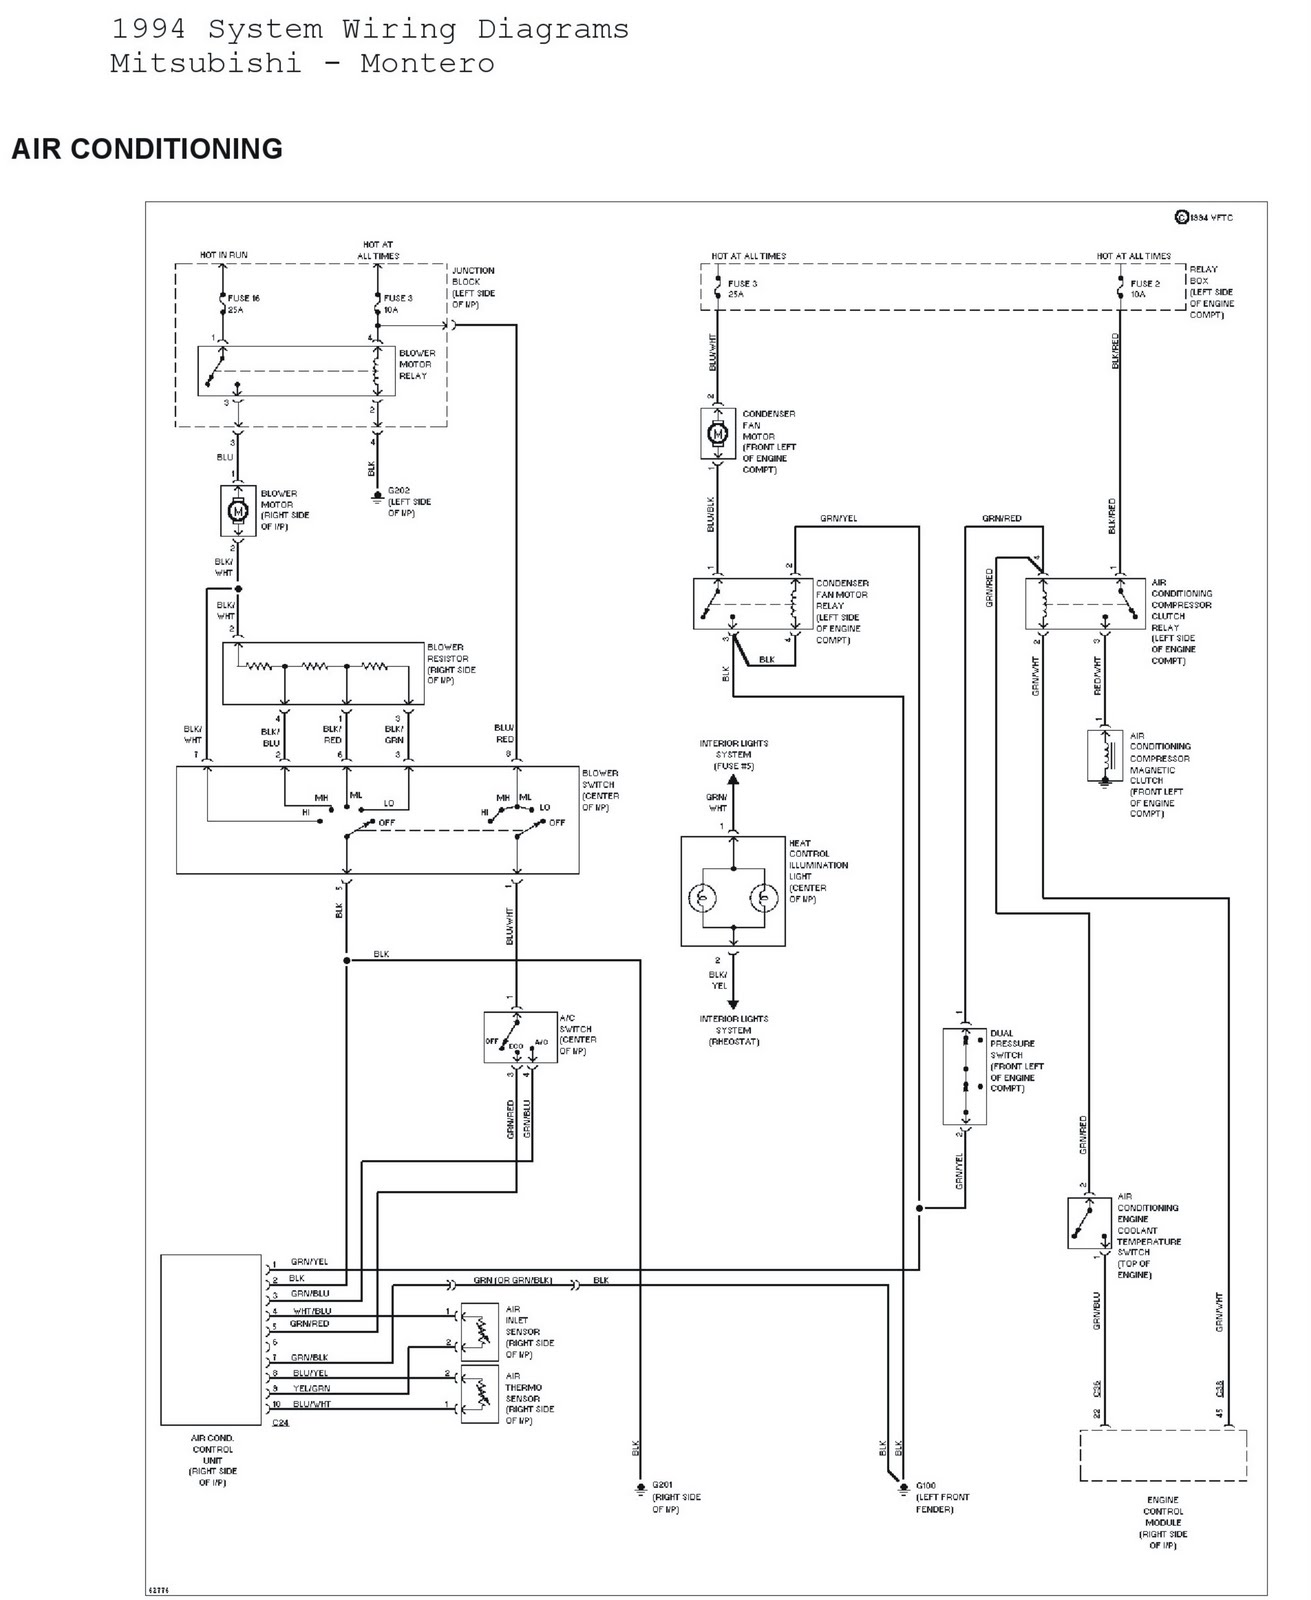 beautiful mitsubishi canter 2001 wiring diagram collection diagram Peugeot 207  Peugeot 208 wonderful mitsubishi fuso wiring diagram ideas the best electrical